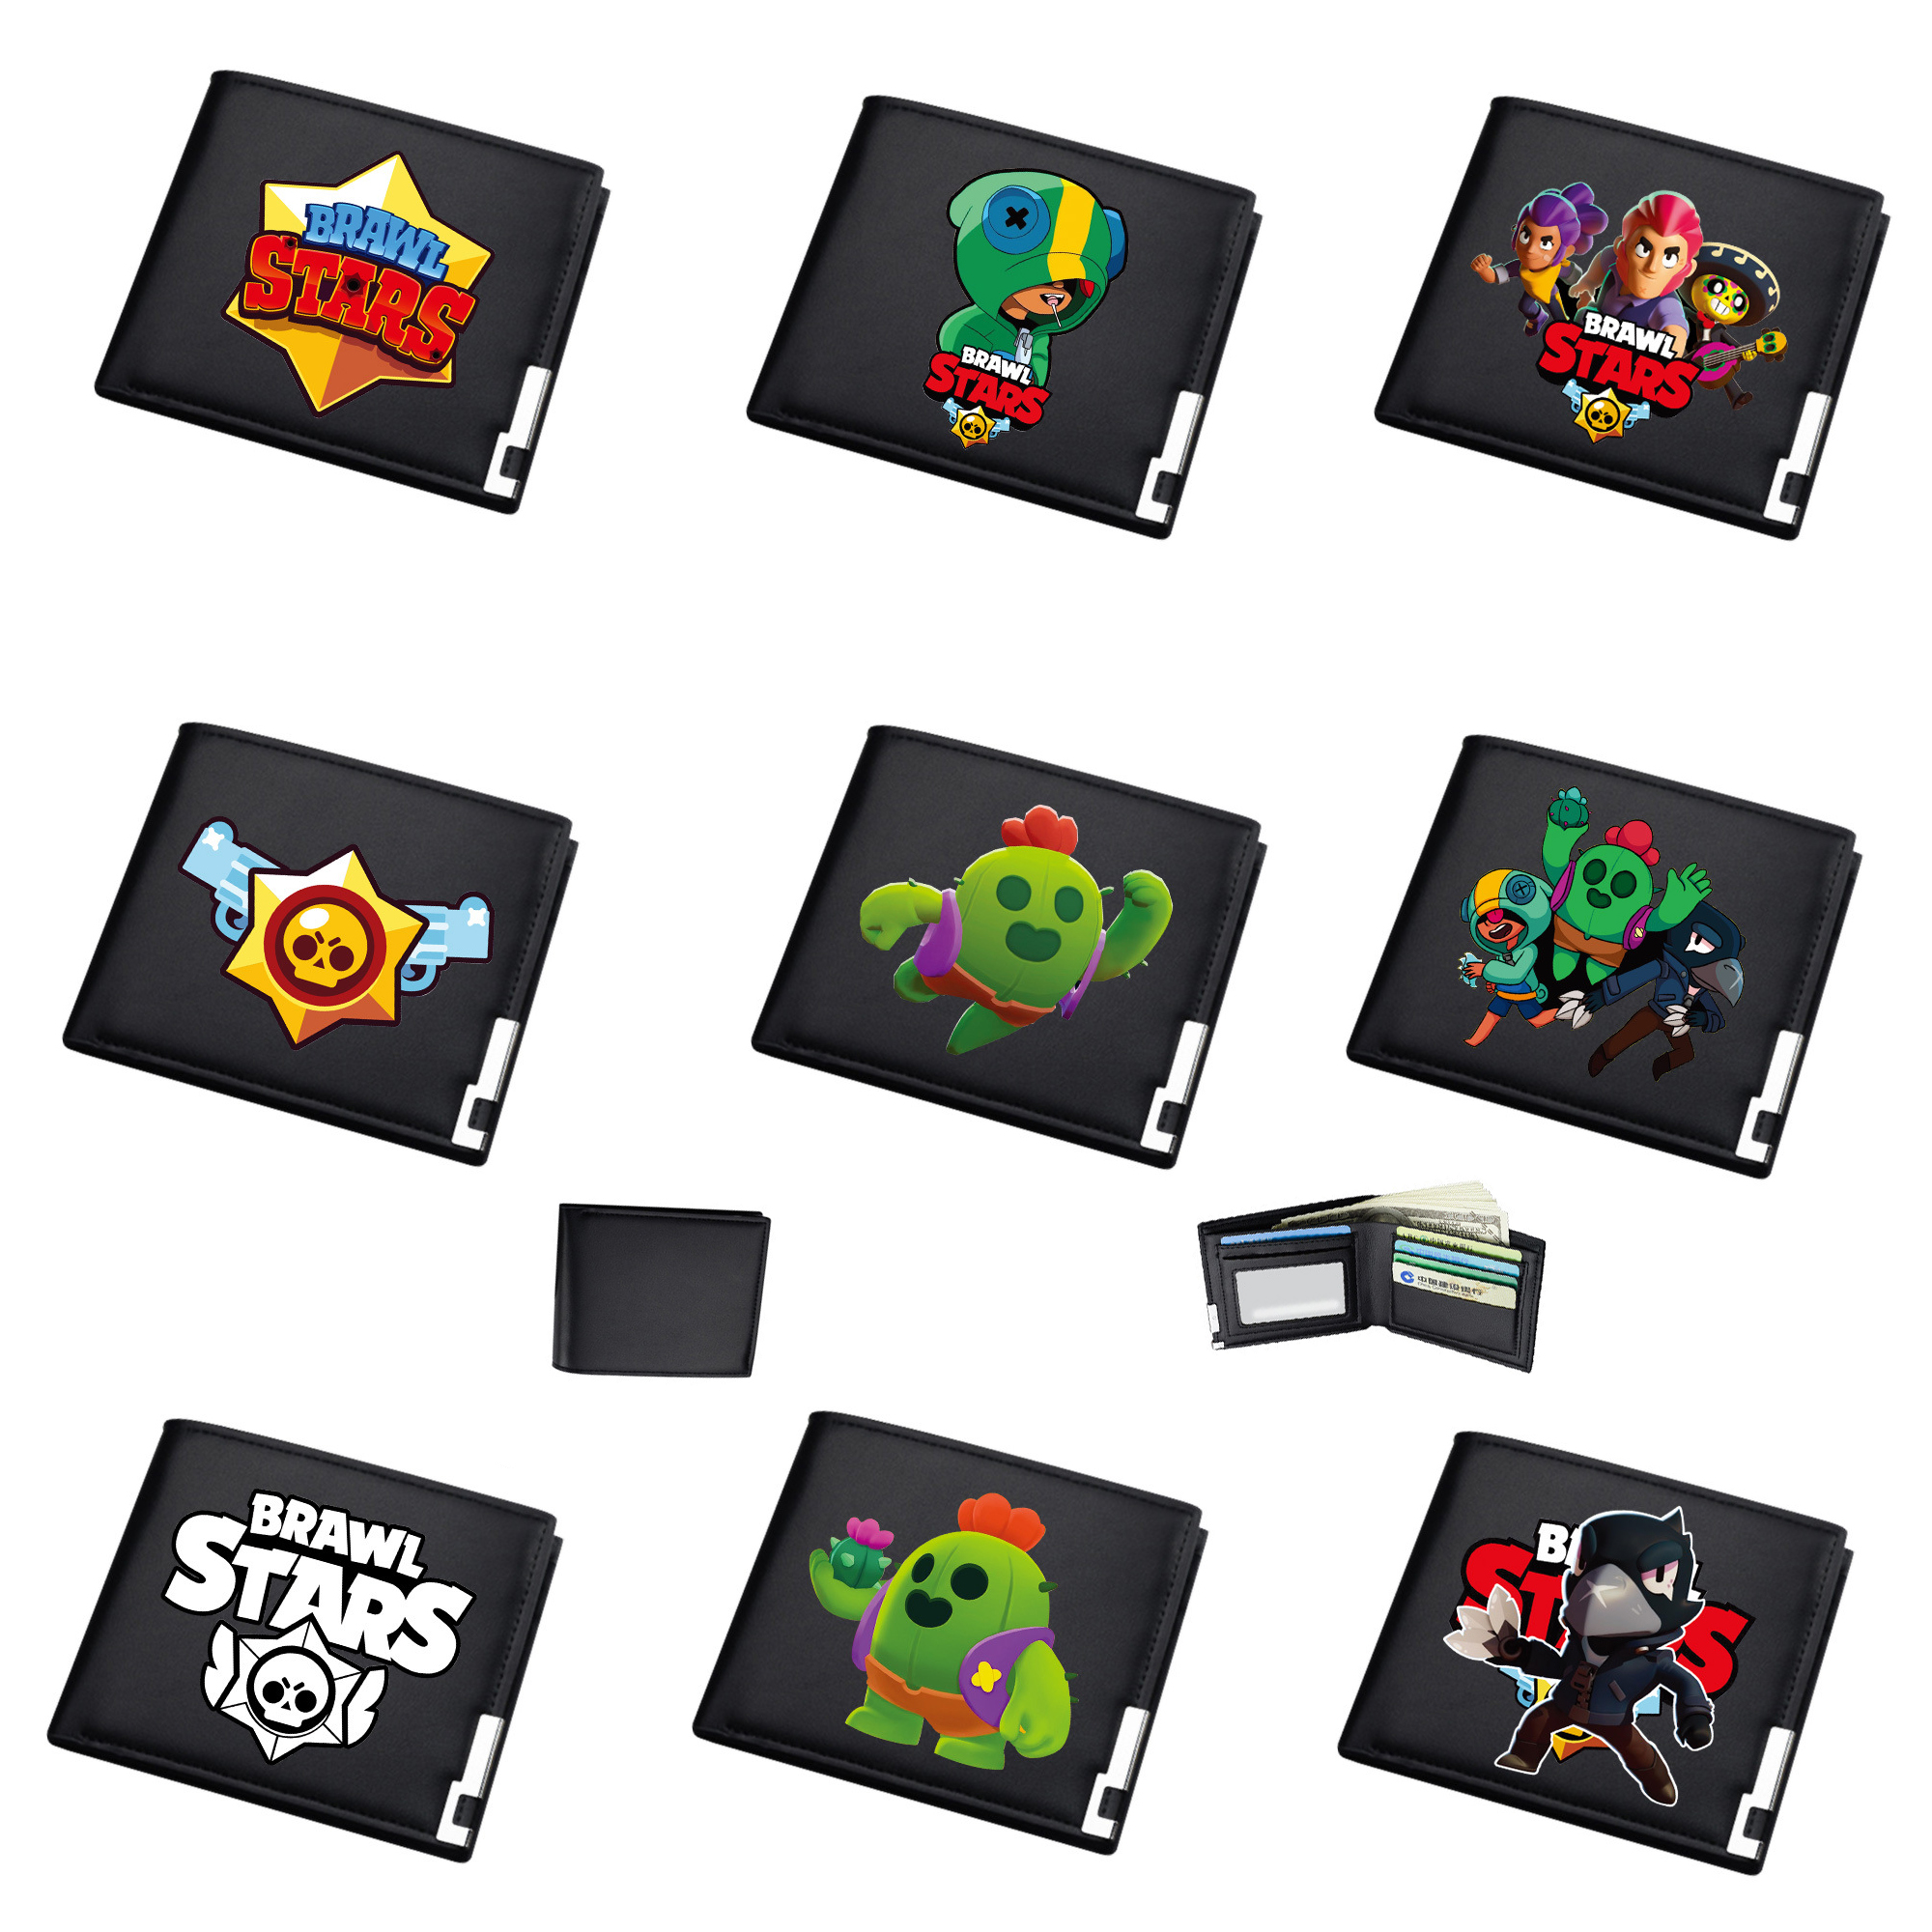 Brawl Star Games Wallet Hot Sale Animated Cartoon Fashion Brand Purse Young Boys Girl Purse Personality Man Bad Card Coin Wallet